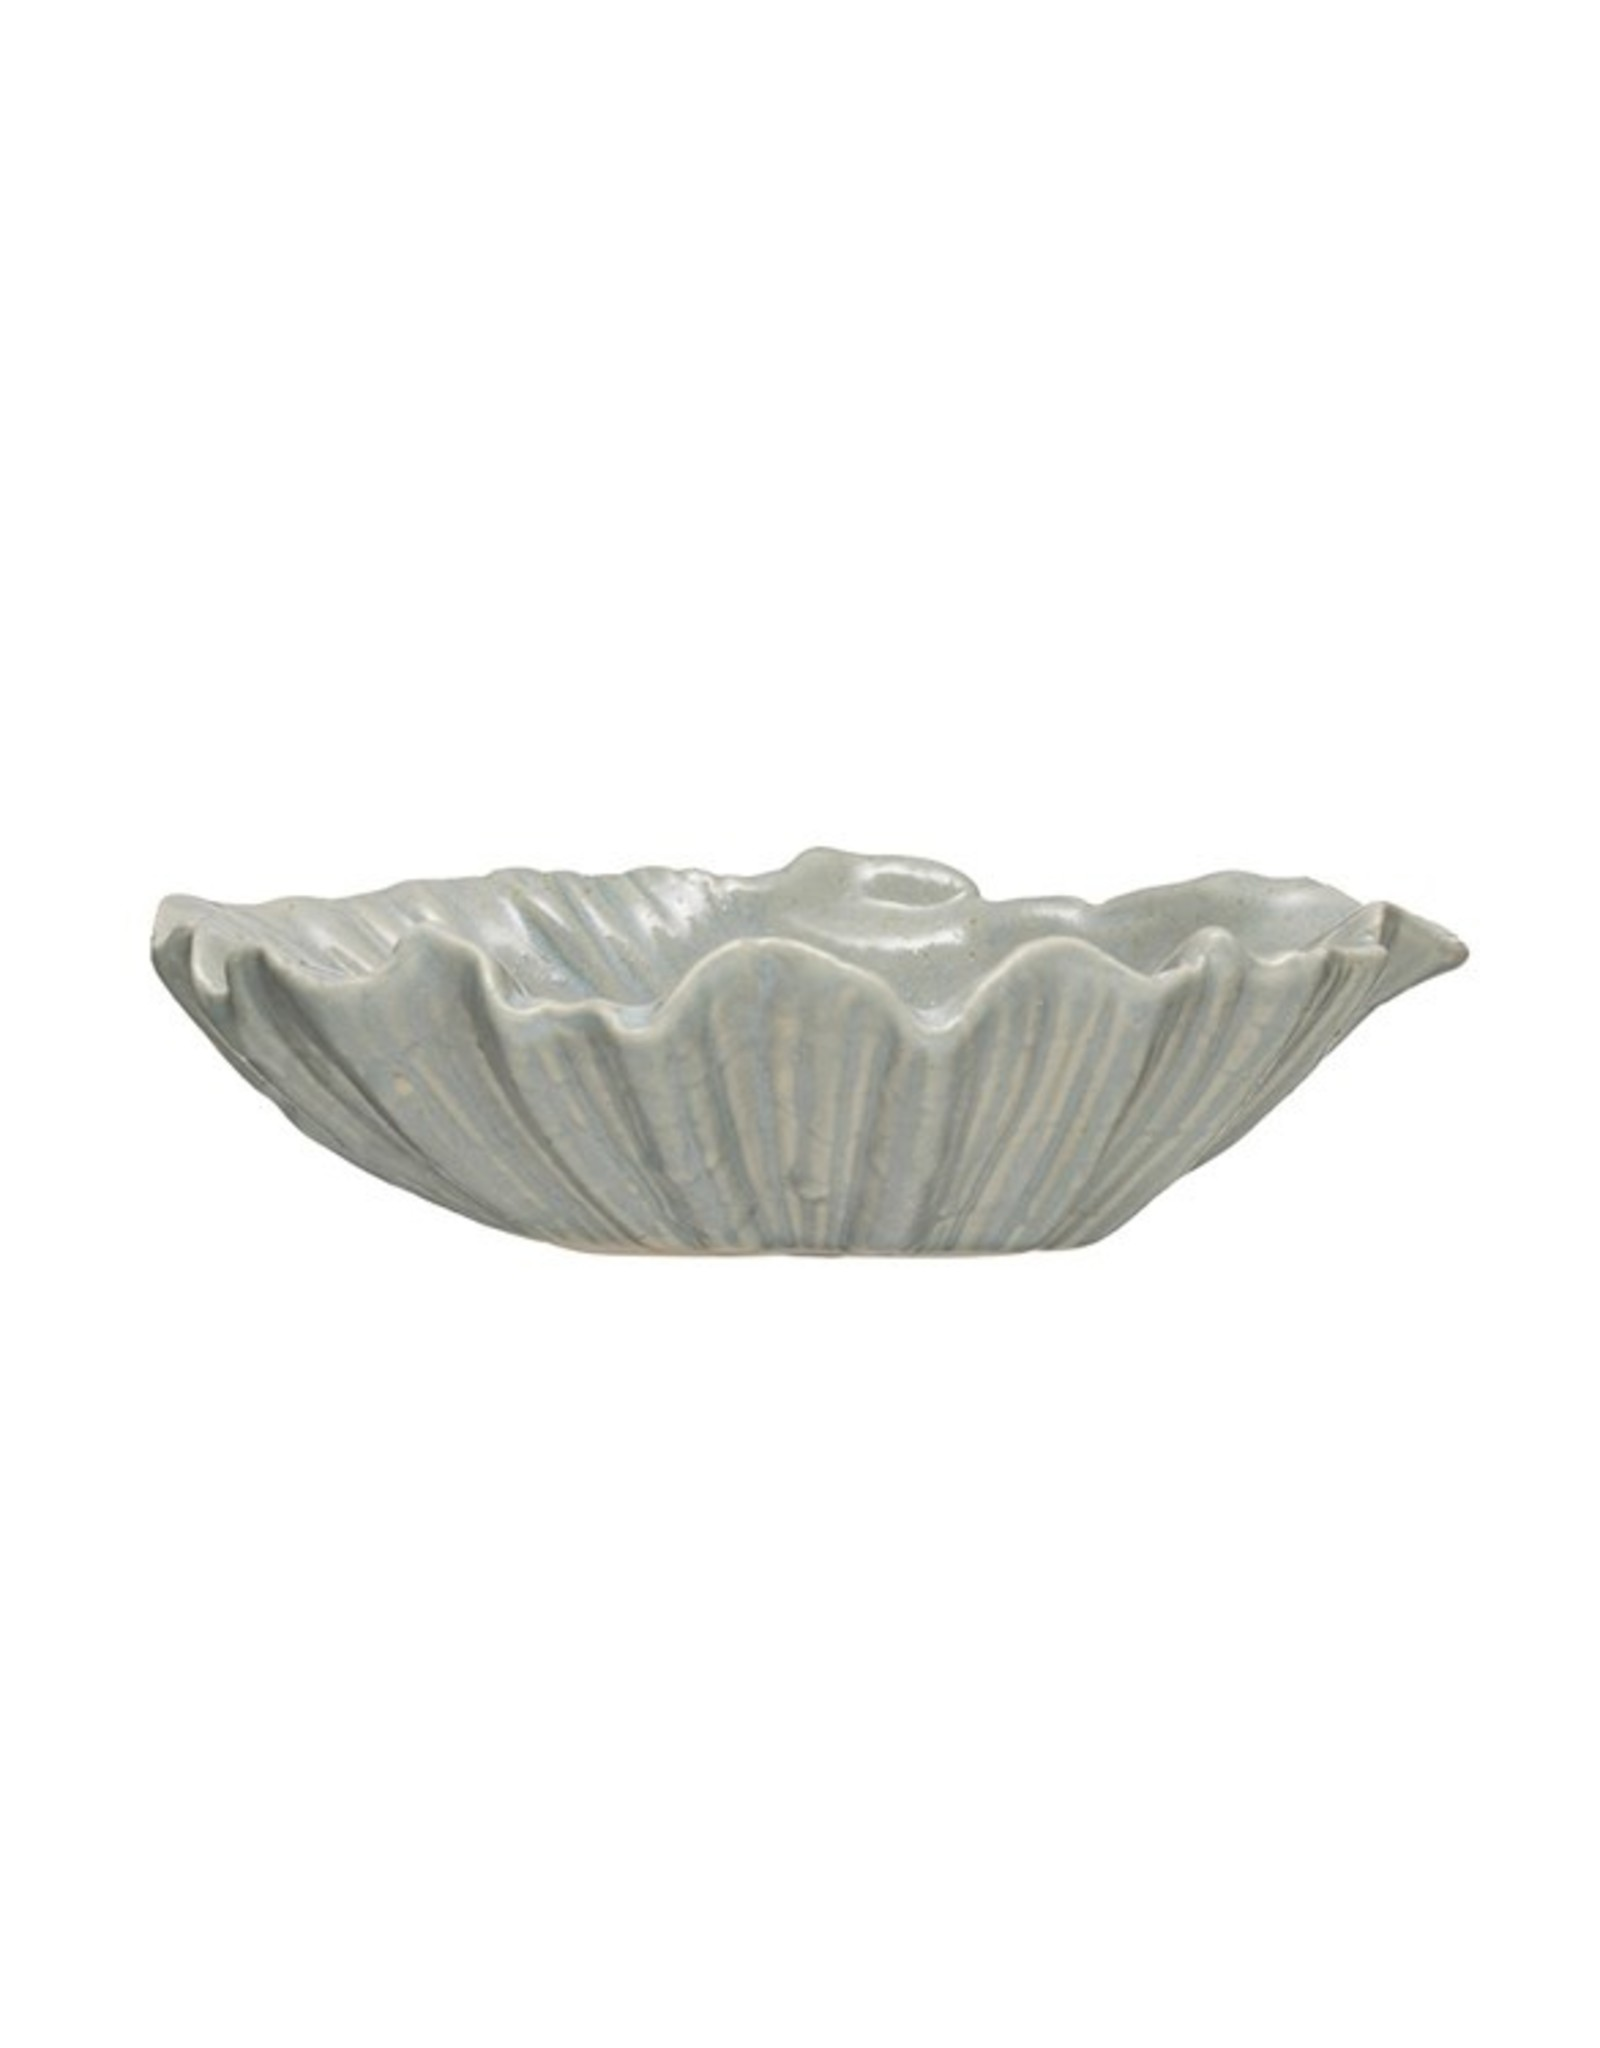 "Creative Co-Op 8-1/2""L x 7""W x 2-1/2""H Stoneware Shell Dish, Reactive Glaze, Blue (Each One Will Vary)"